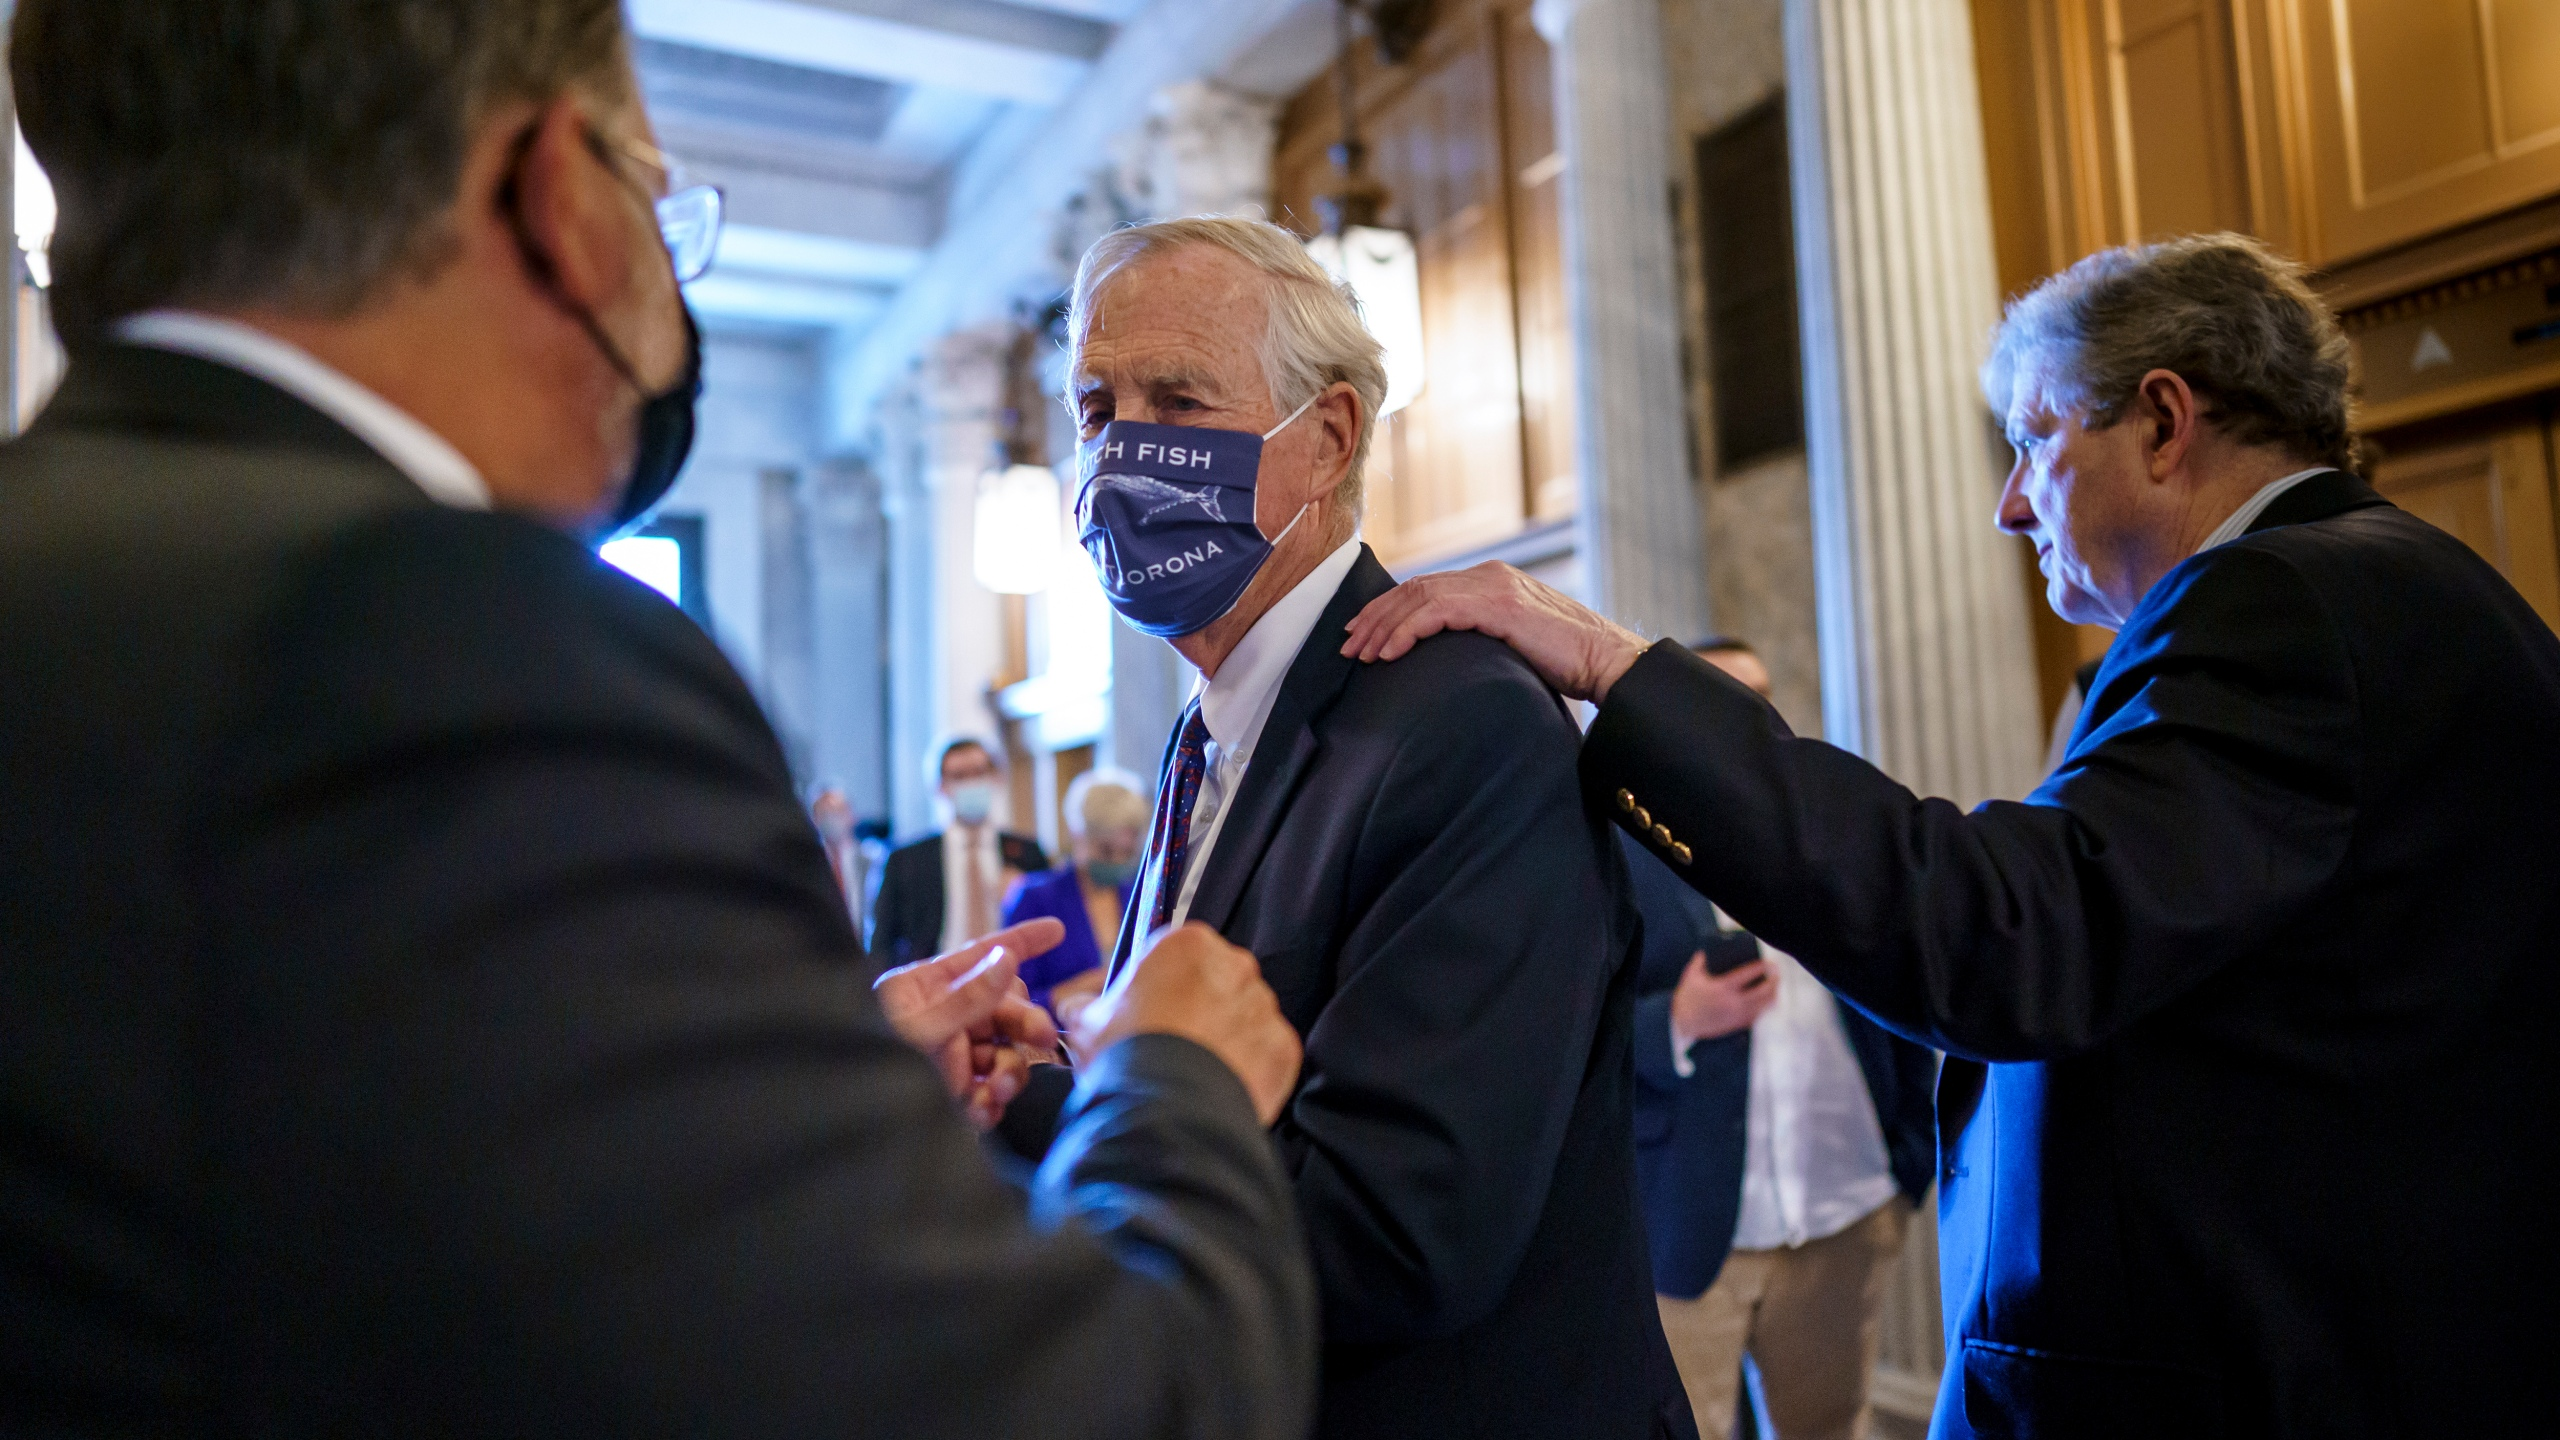 Sen. Angus King, I-Maine, center, speaks with Sen. Gary Peters, D-Mich., left, while Sen. John Kennedy, R-La., walks by at right, as the Senate votes to formally begin debate on a roughly $1 trillion infrastructure plan, a process that could take several days